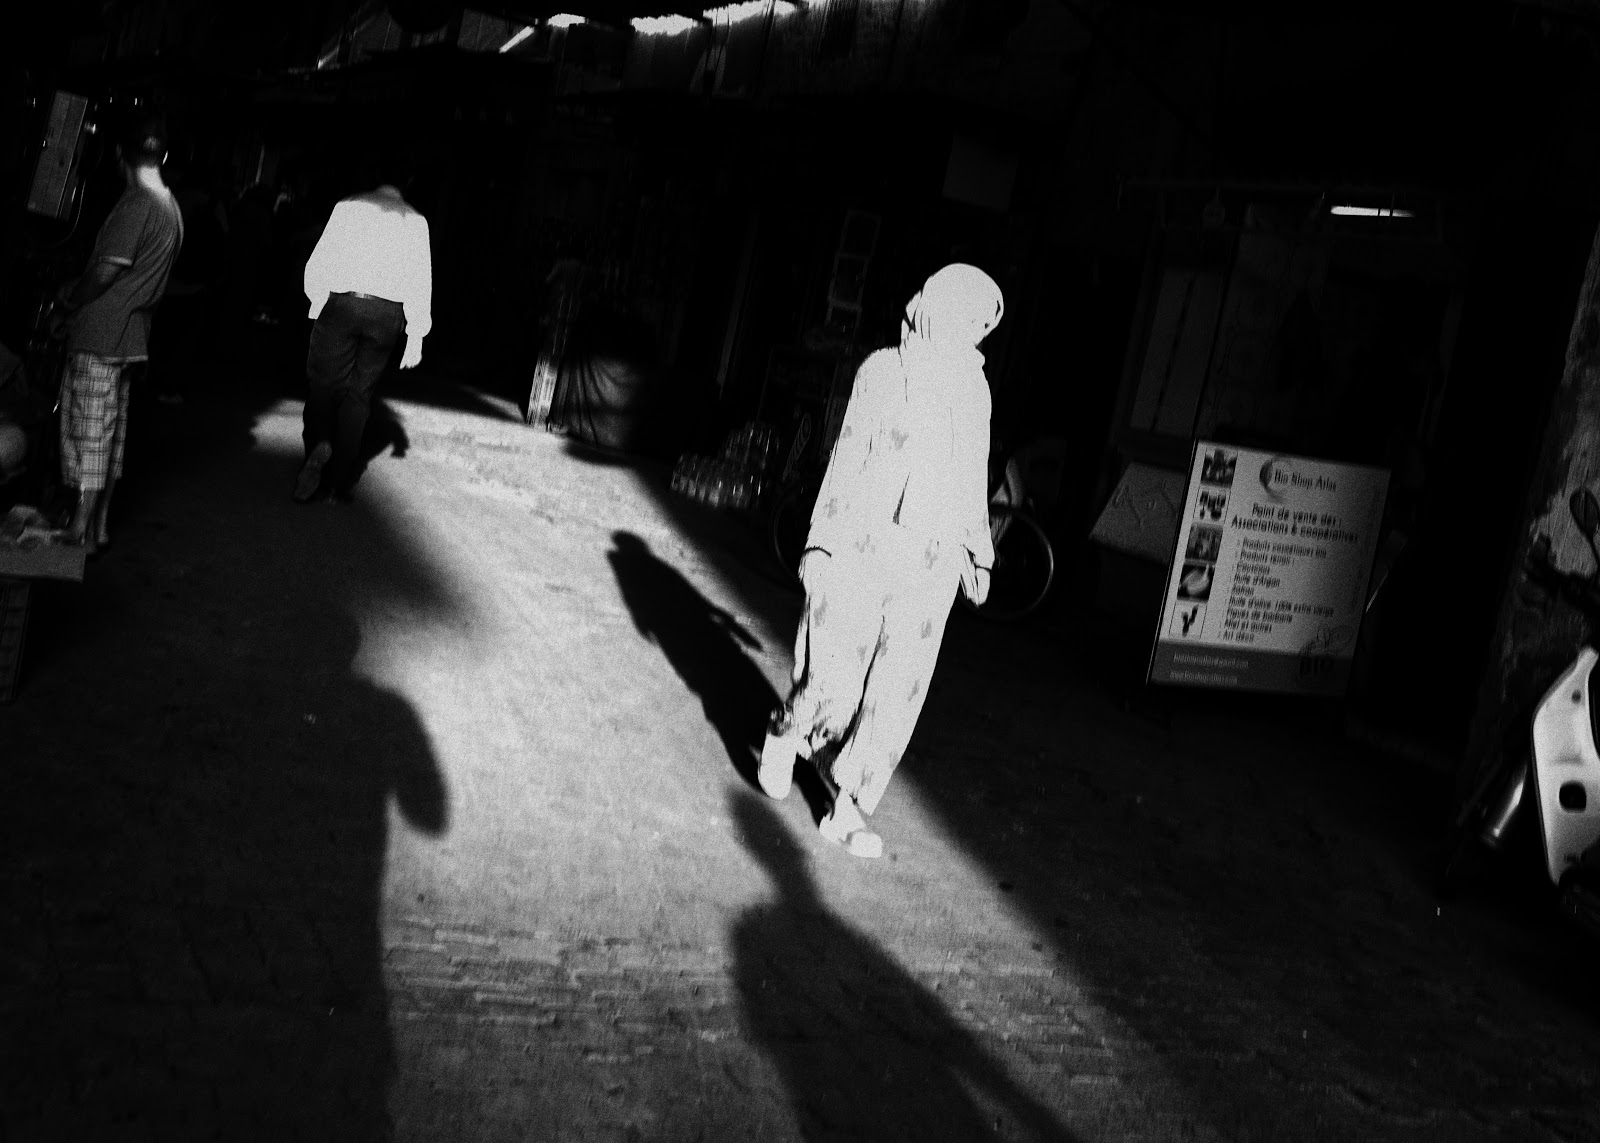 For this image, I carefully set my aperture and shutter speed in order to over-expose the woman and darken the surroundings. The extreme high contrast results in a dramatic image.